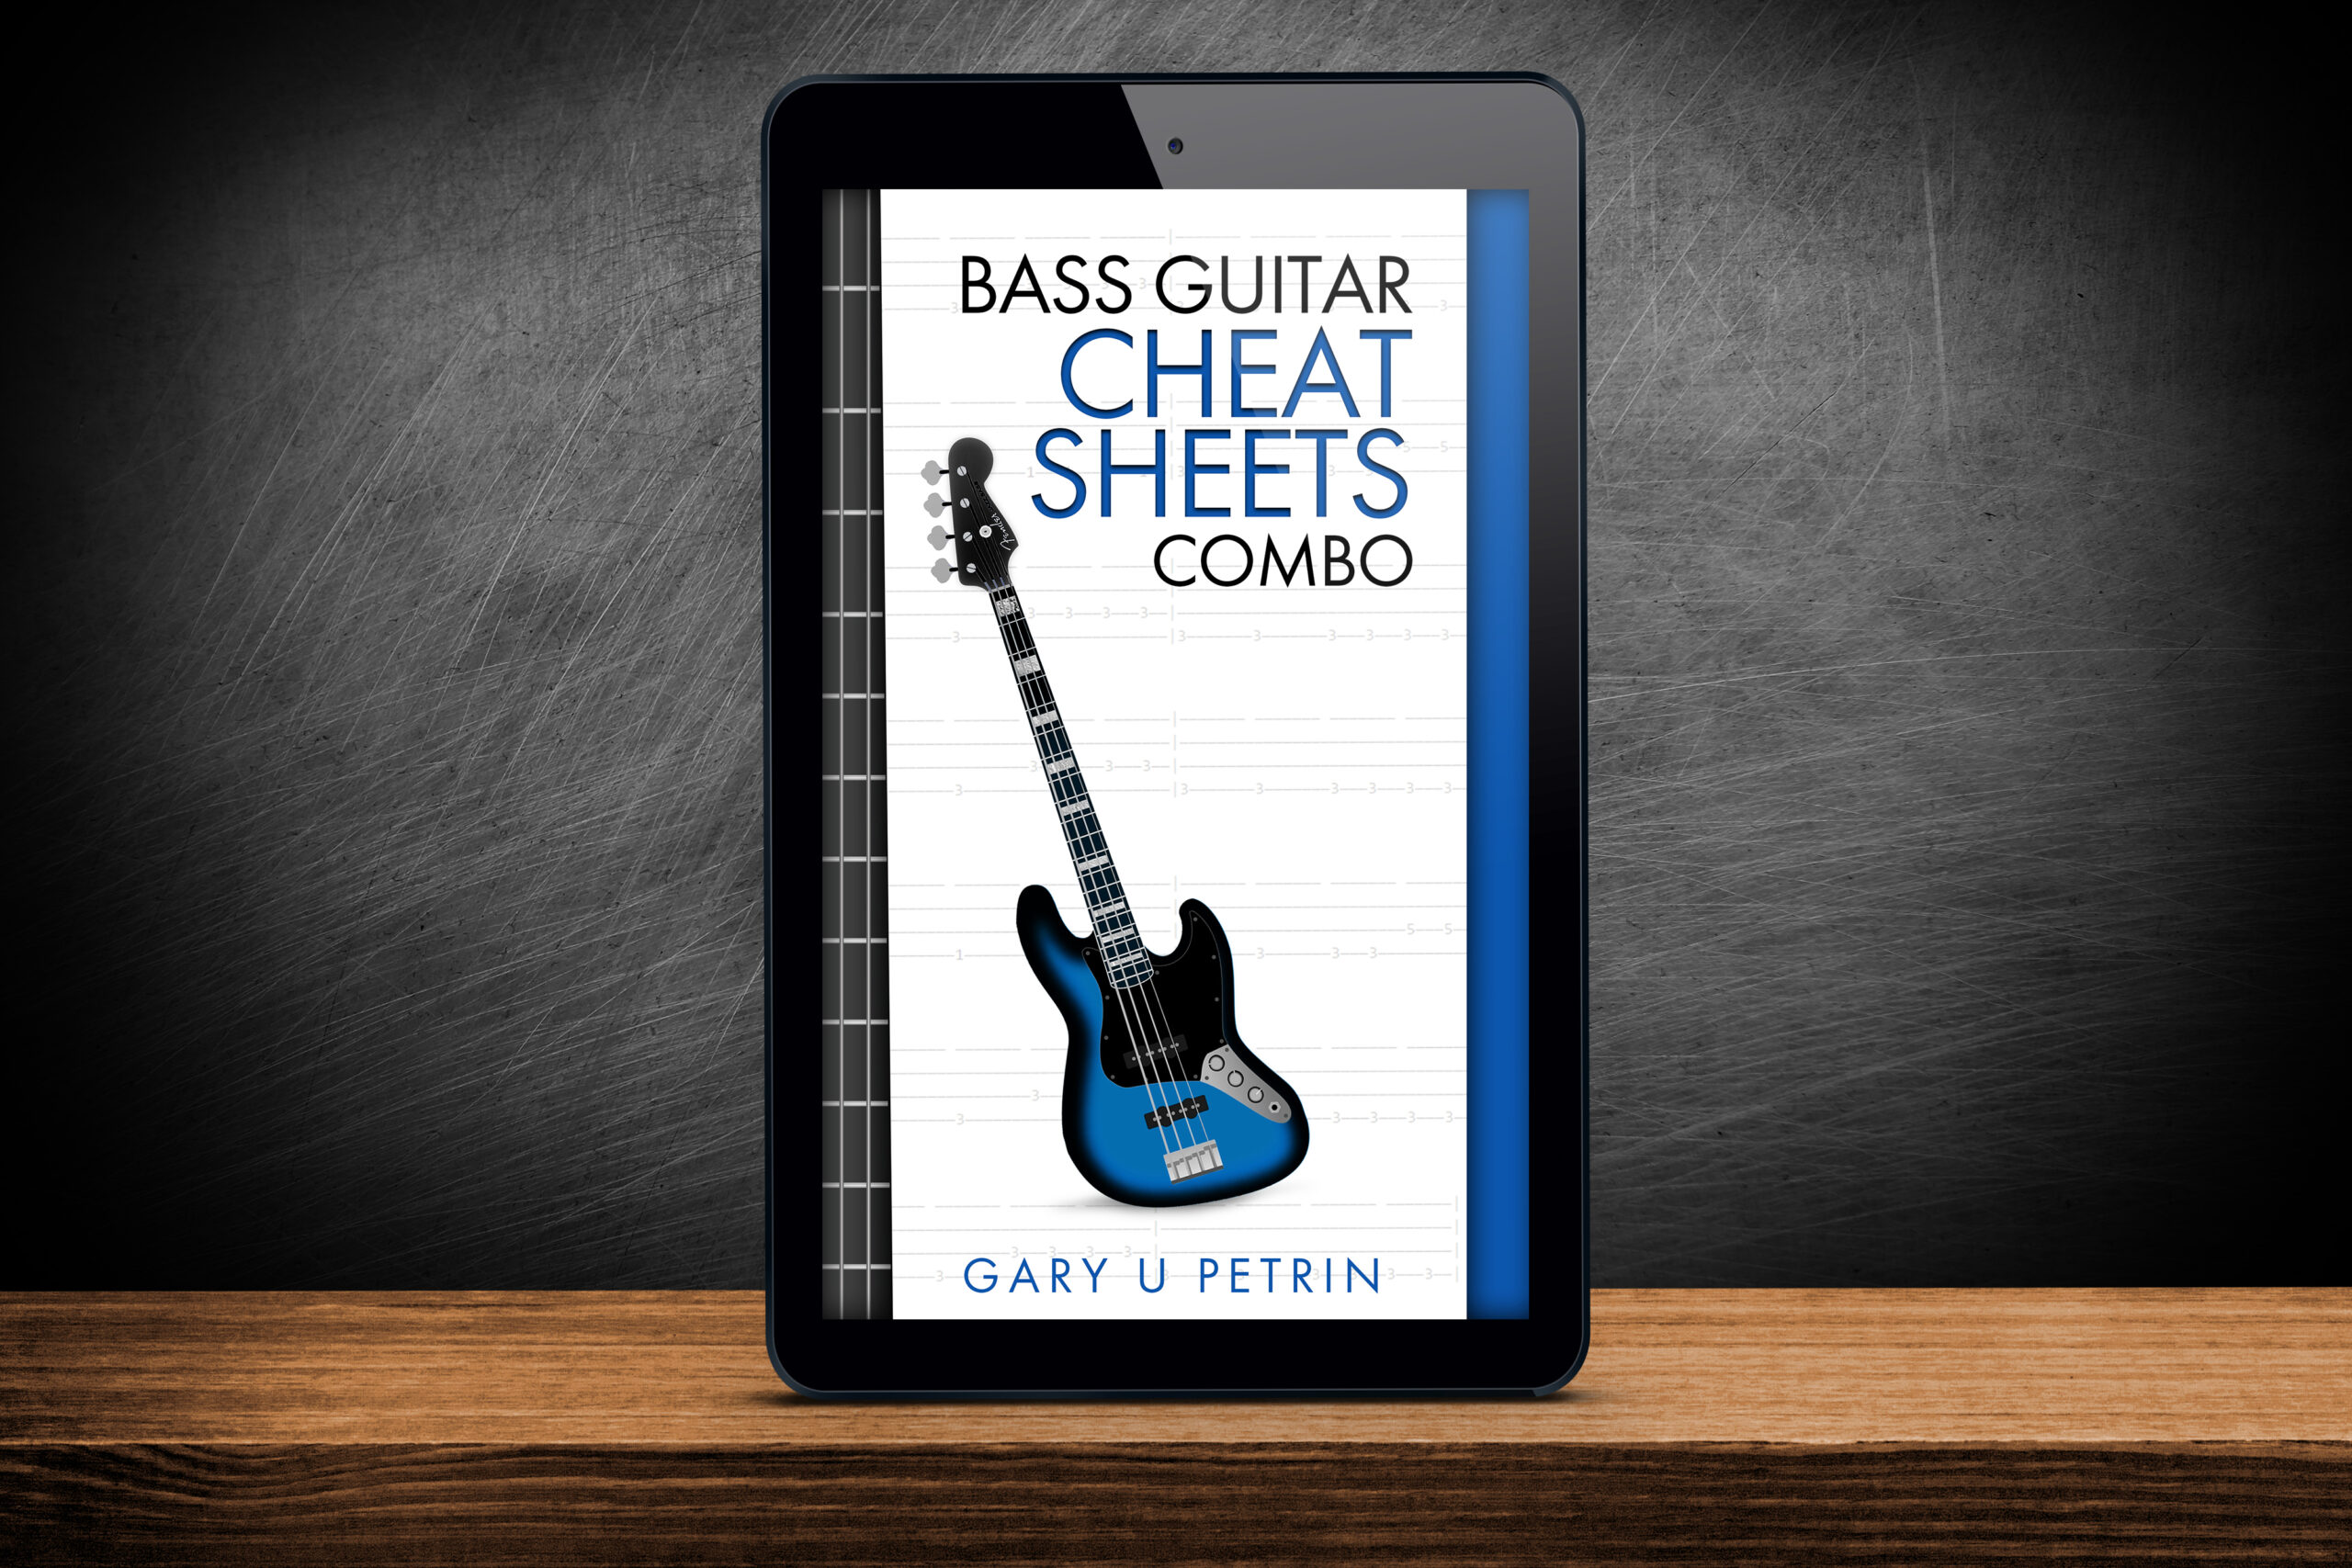 Bass Guitar Cheat Sheets - Must have Resources for Bassists!